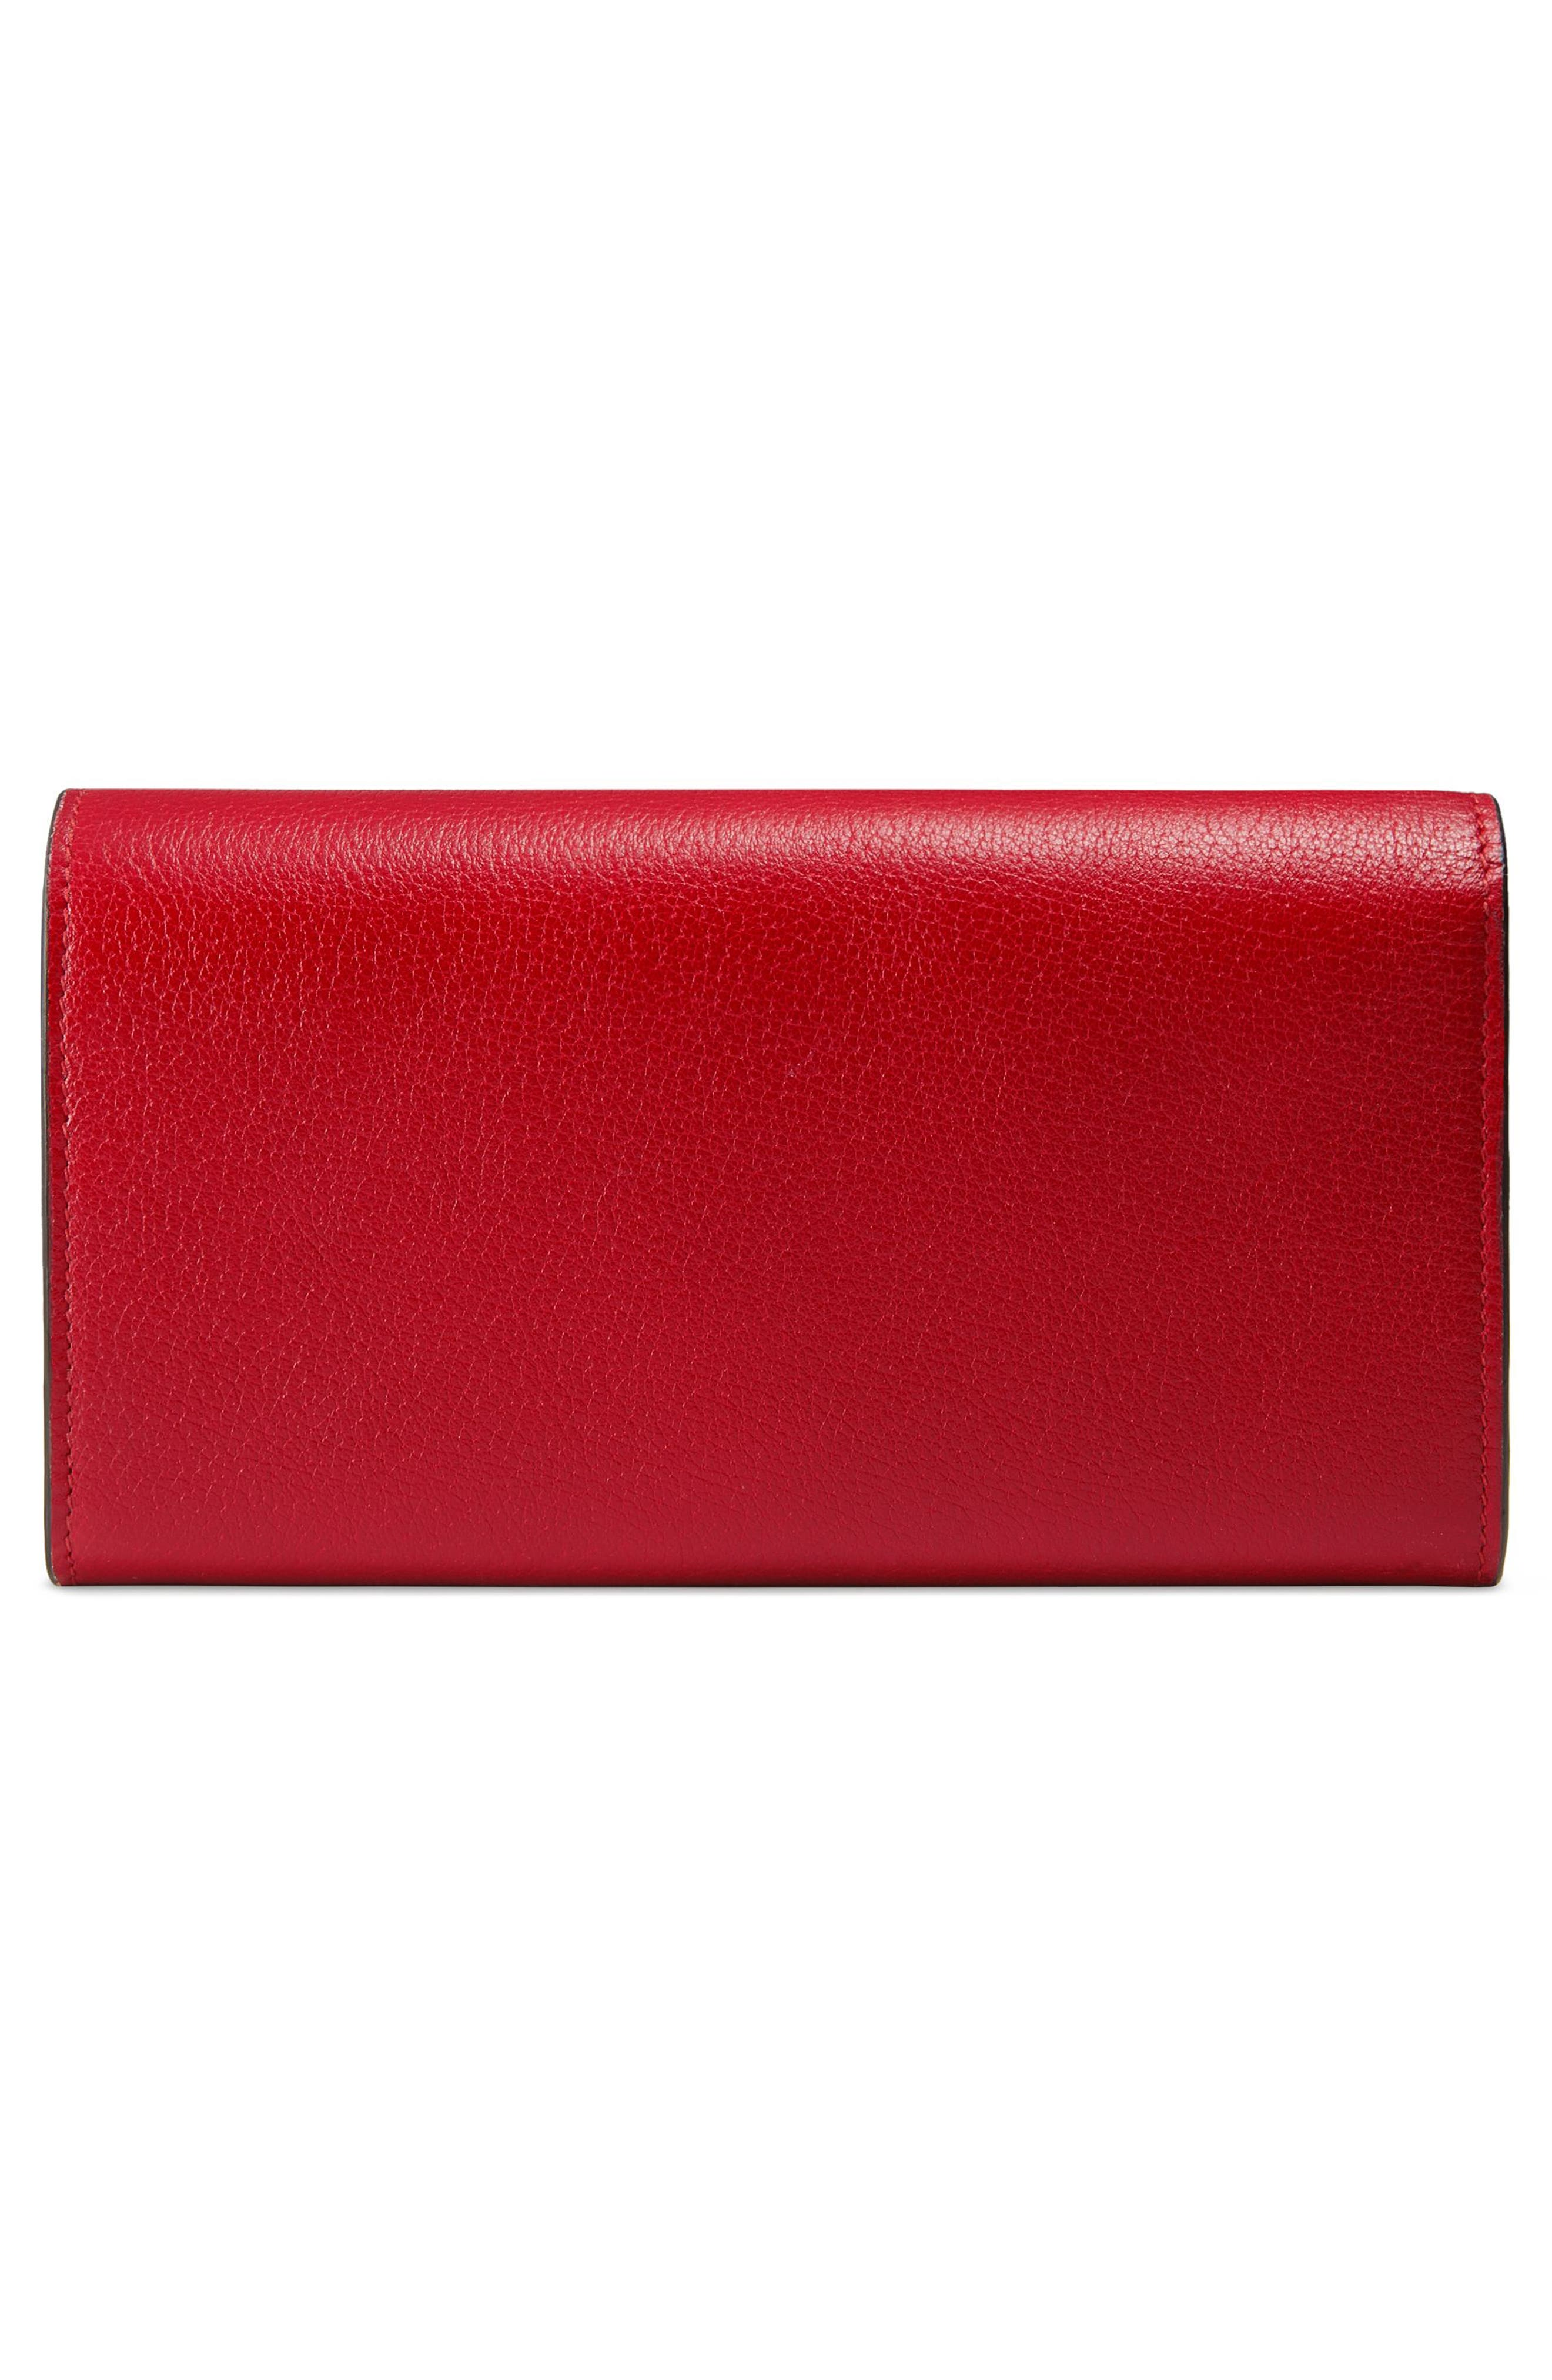 Ricamo Fiori Floral Embroidered Continental Wallet,                             Alternate thumbnail 6, color,